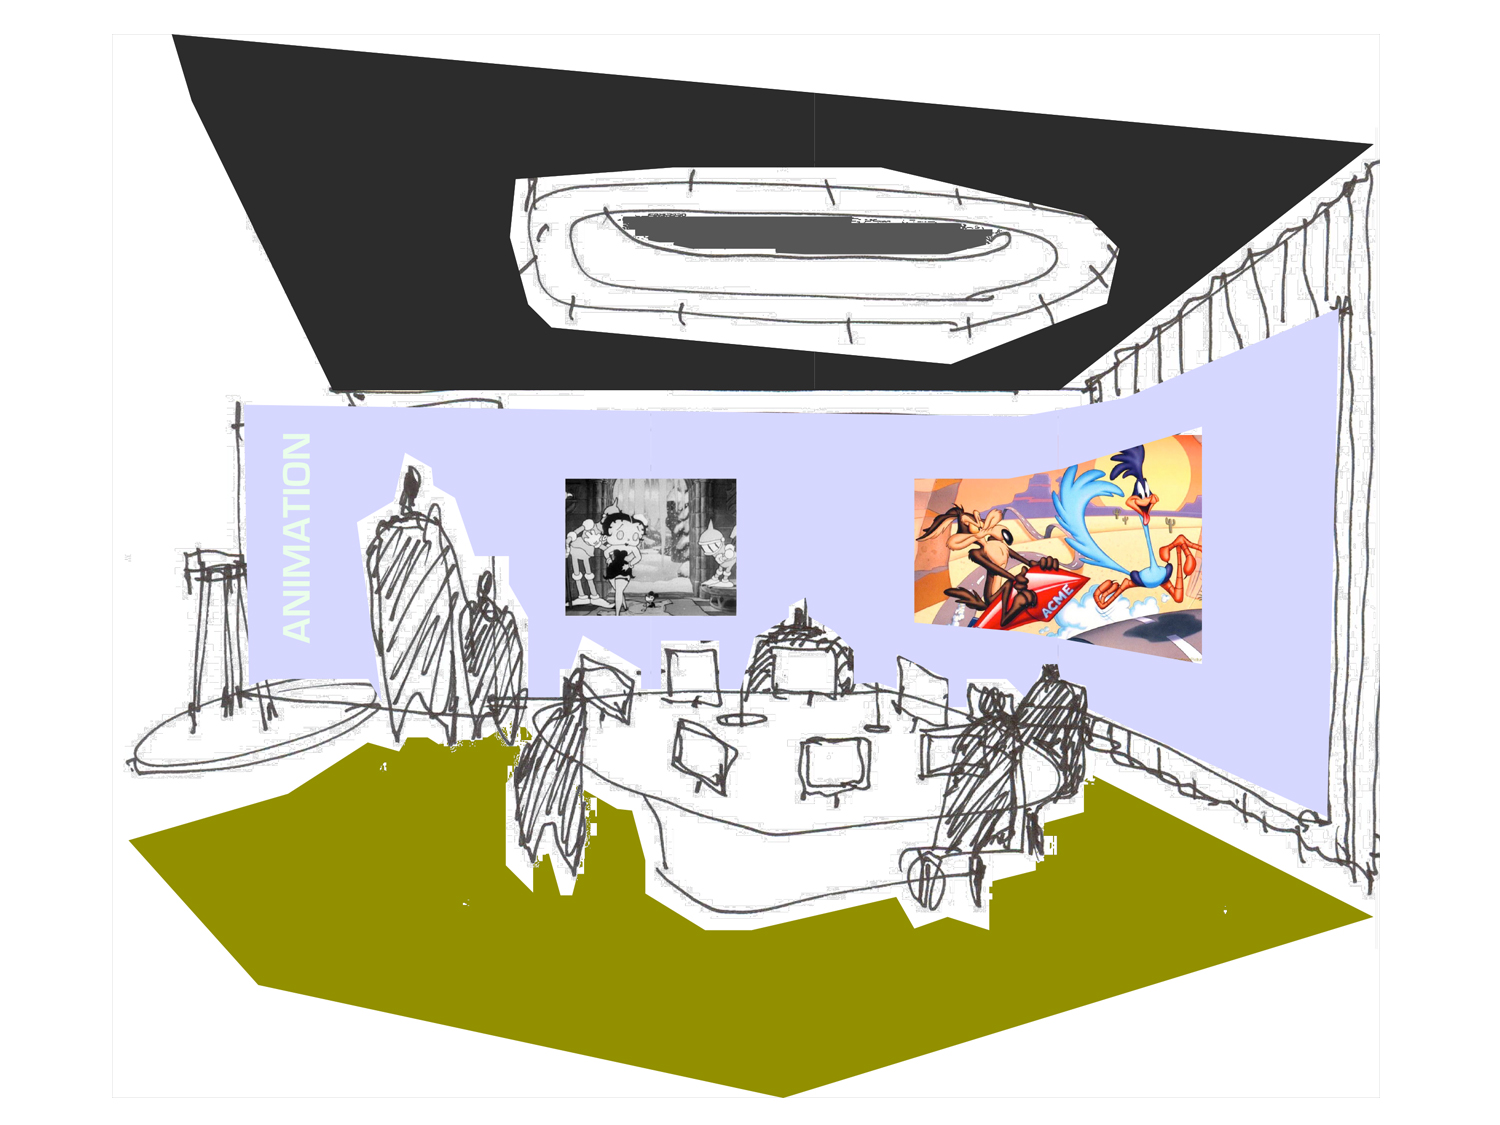 ACHA, ALI HOCEK, MUSEUM OF MOVING IMAGES, BEHIND THE SCREEN, CONCEPT SKETCH, QUEENS, NEW YORK